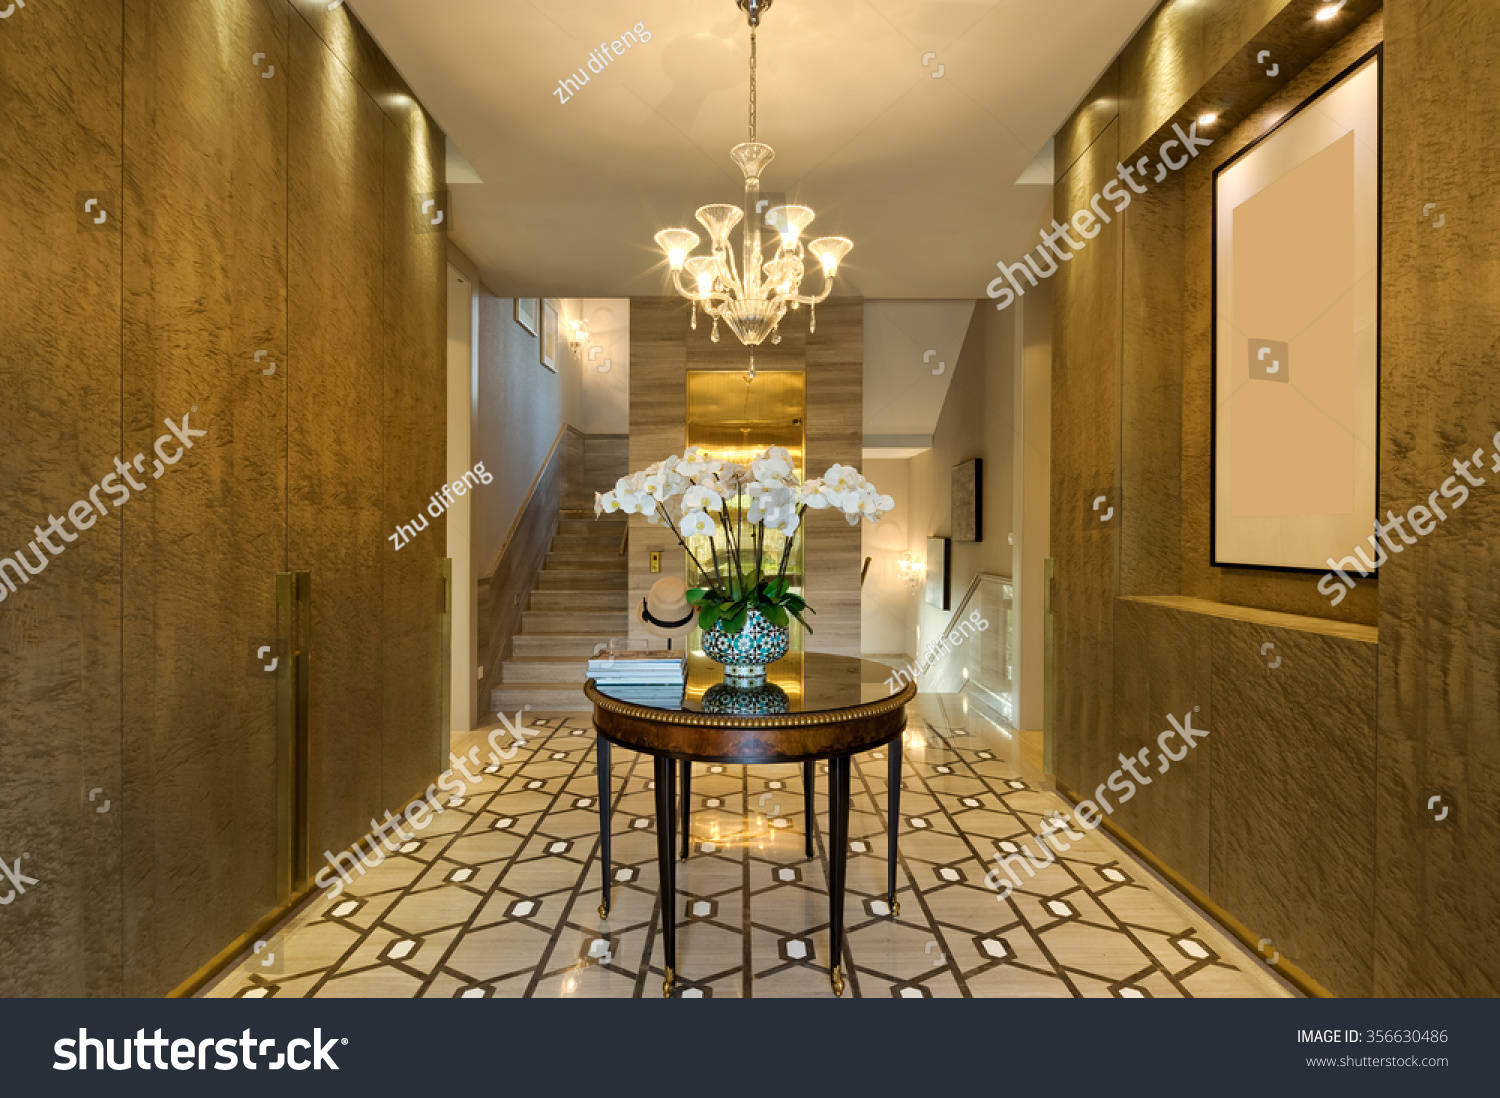 furniture for entrance hall. Decoration And Furniture In Modern Entrance Hall For D